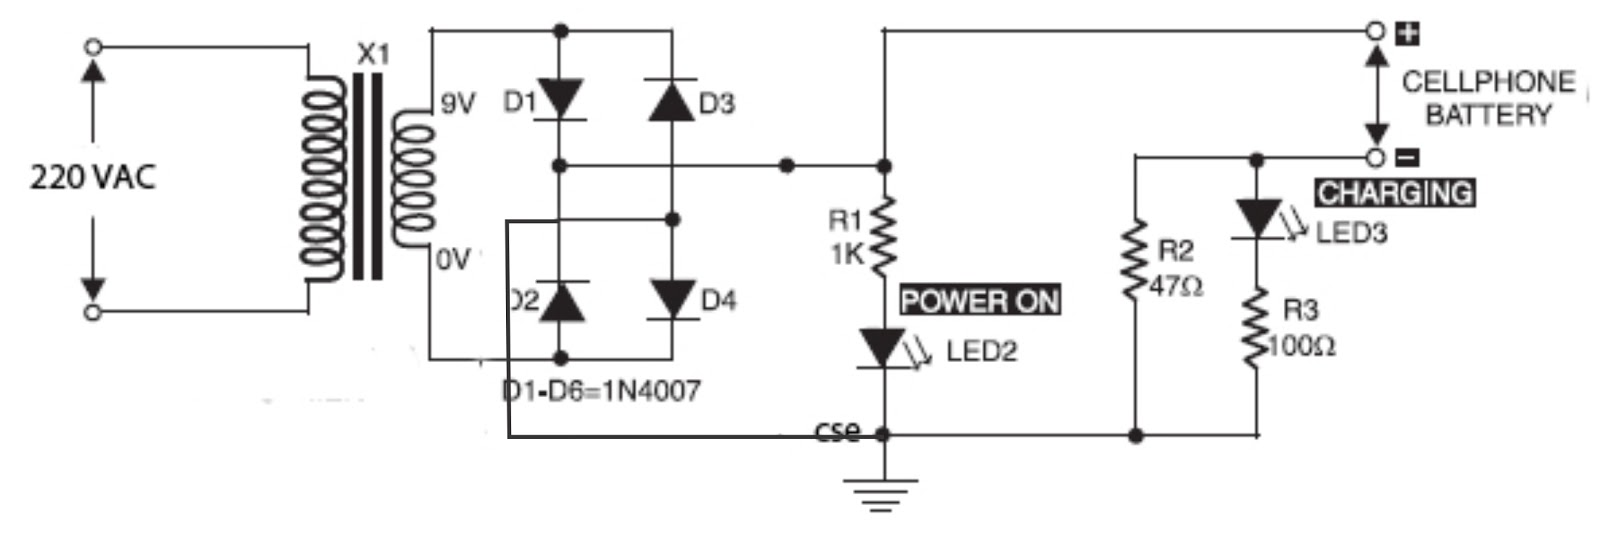 Usb Charging Diagram Circuit Charger Free Auto Electrical Wiring 1600x547